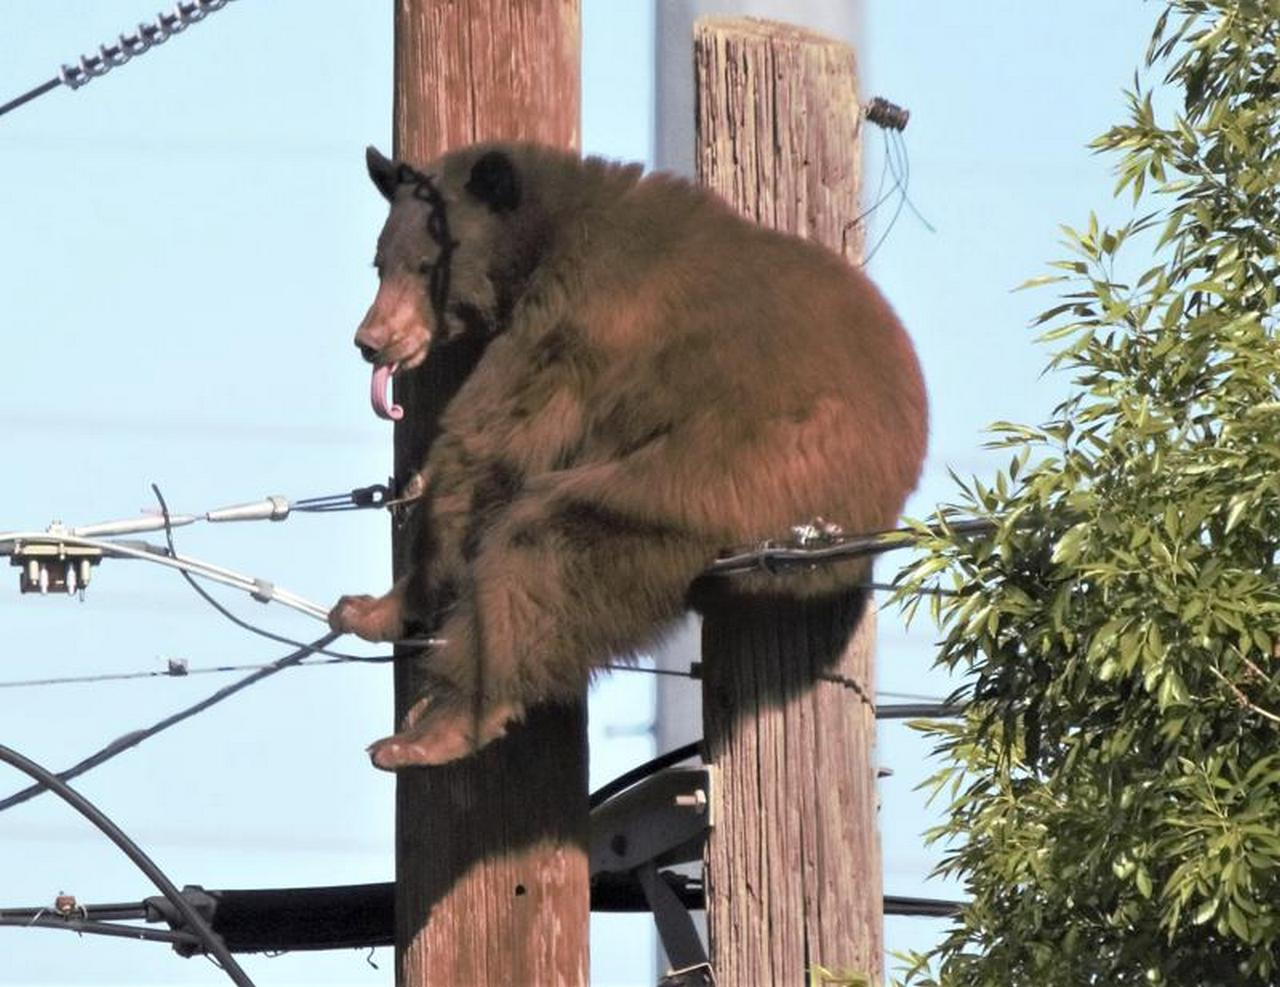 High-wire act: Bear stakes brief claim atop utility poles in Arizona border town